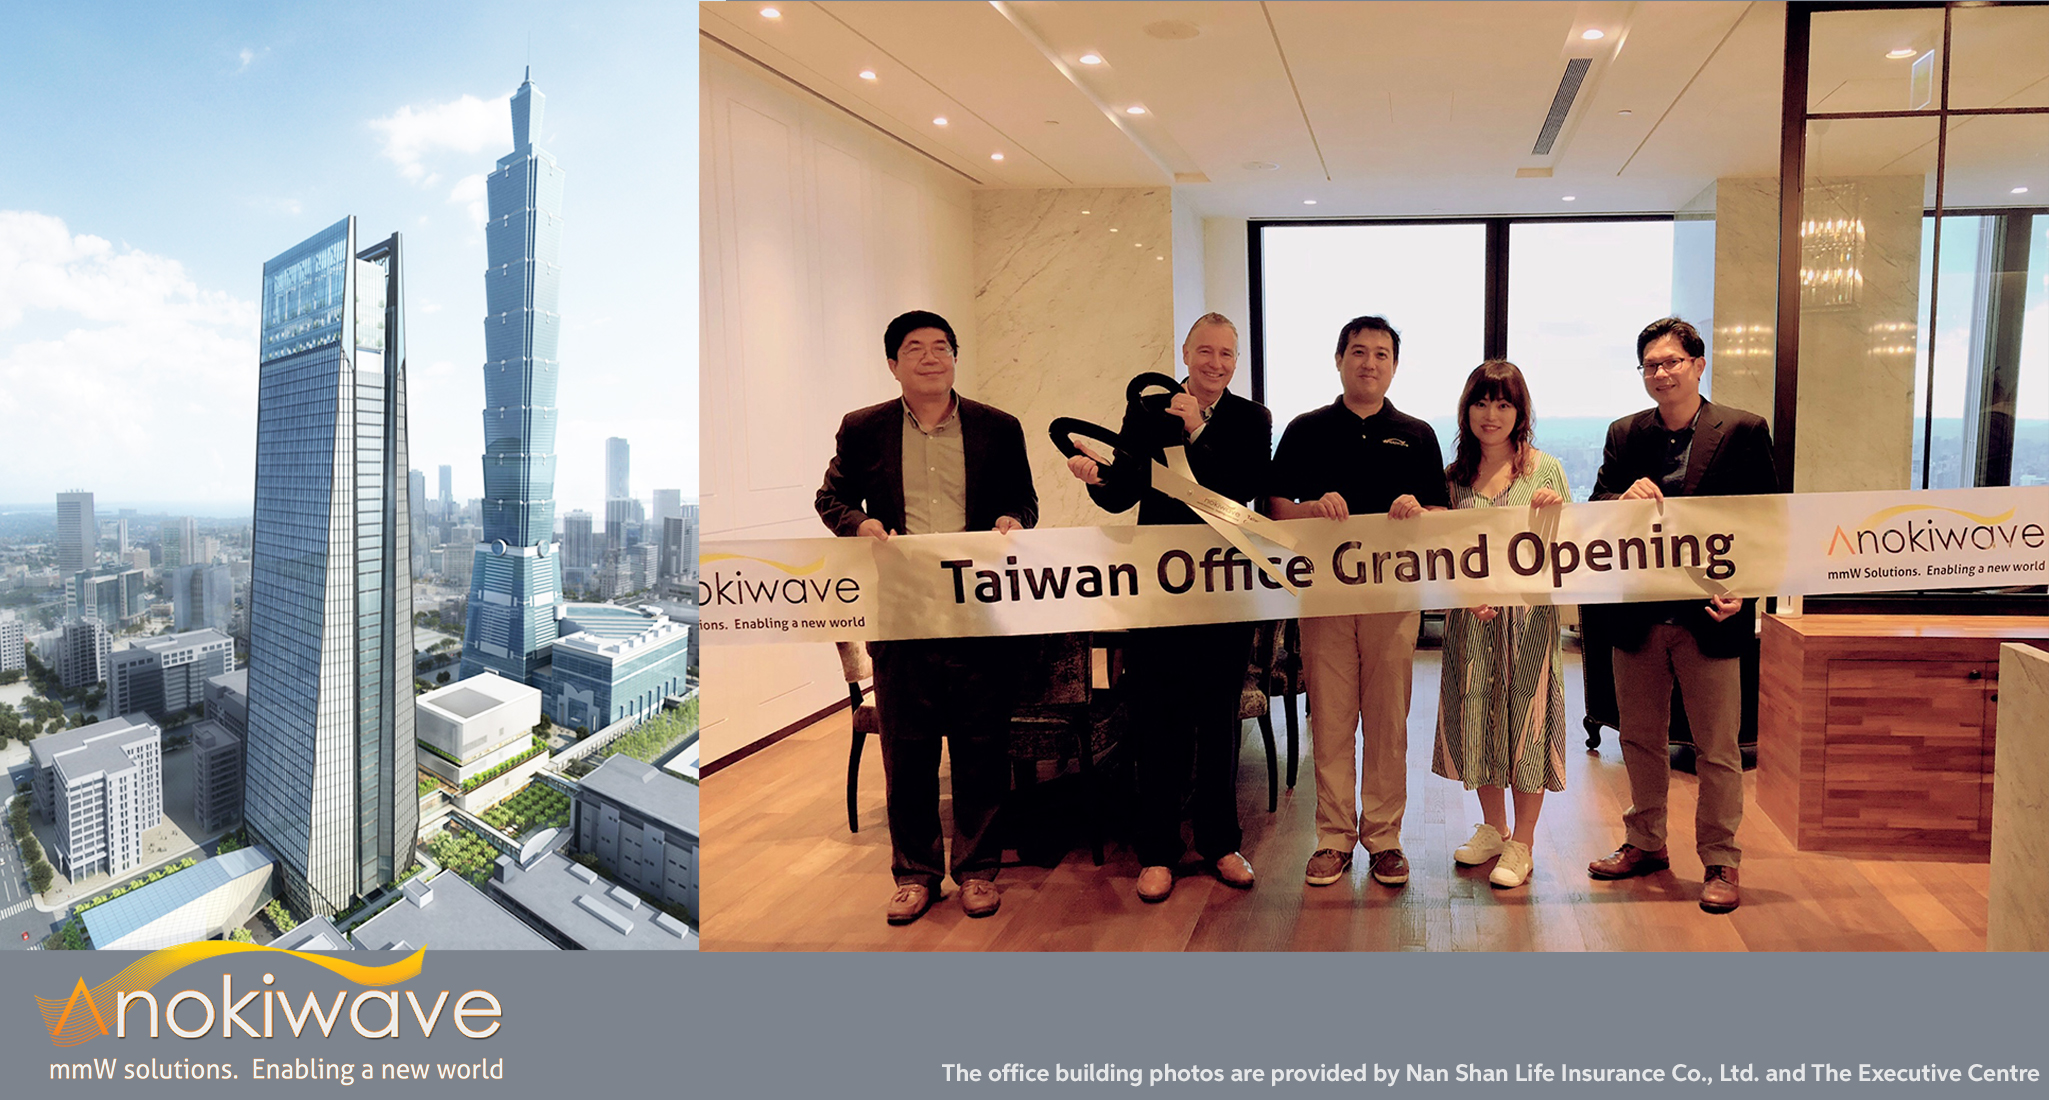 The Anokiwave A/P team celebrate the opening of the new Taiwan Office in Taipei, Taiwan